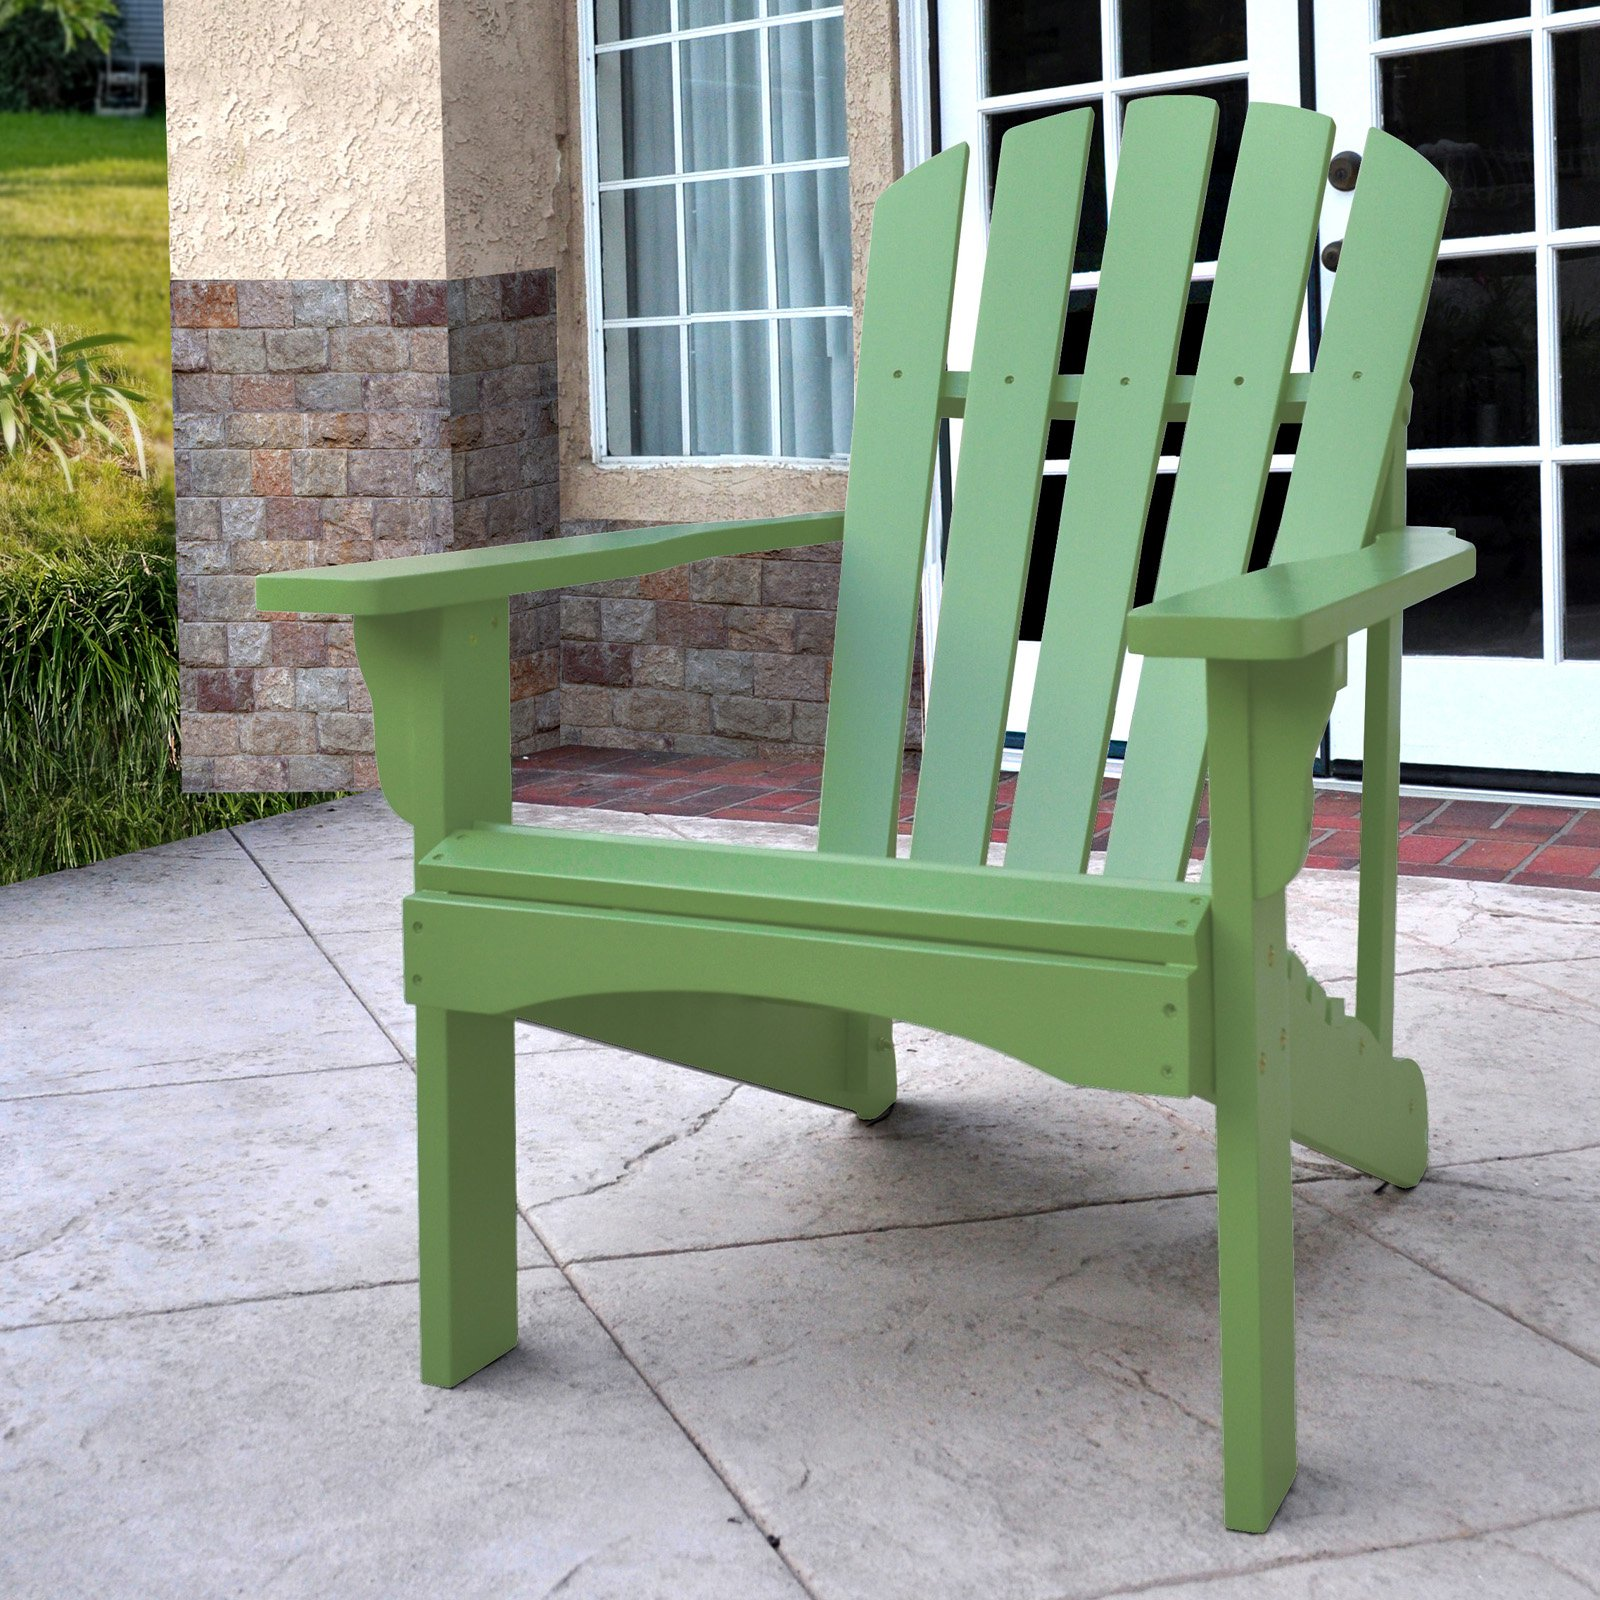 Shine Company Rockport Adirondack Chair Leap Frog by Shine Company